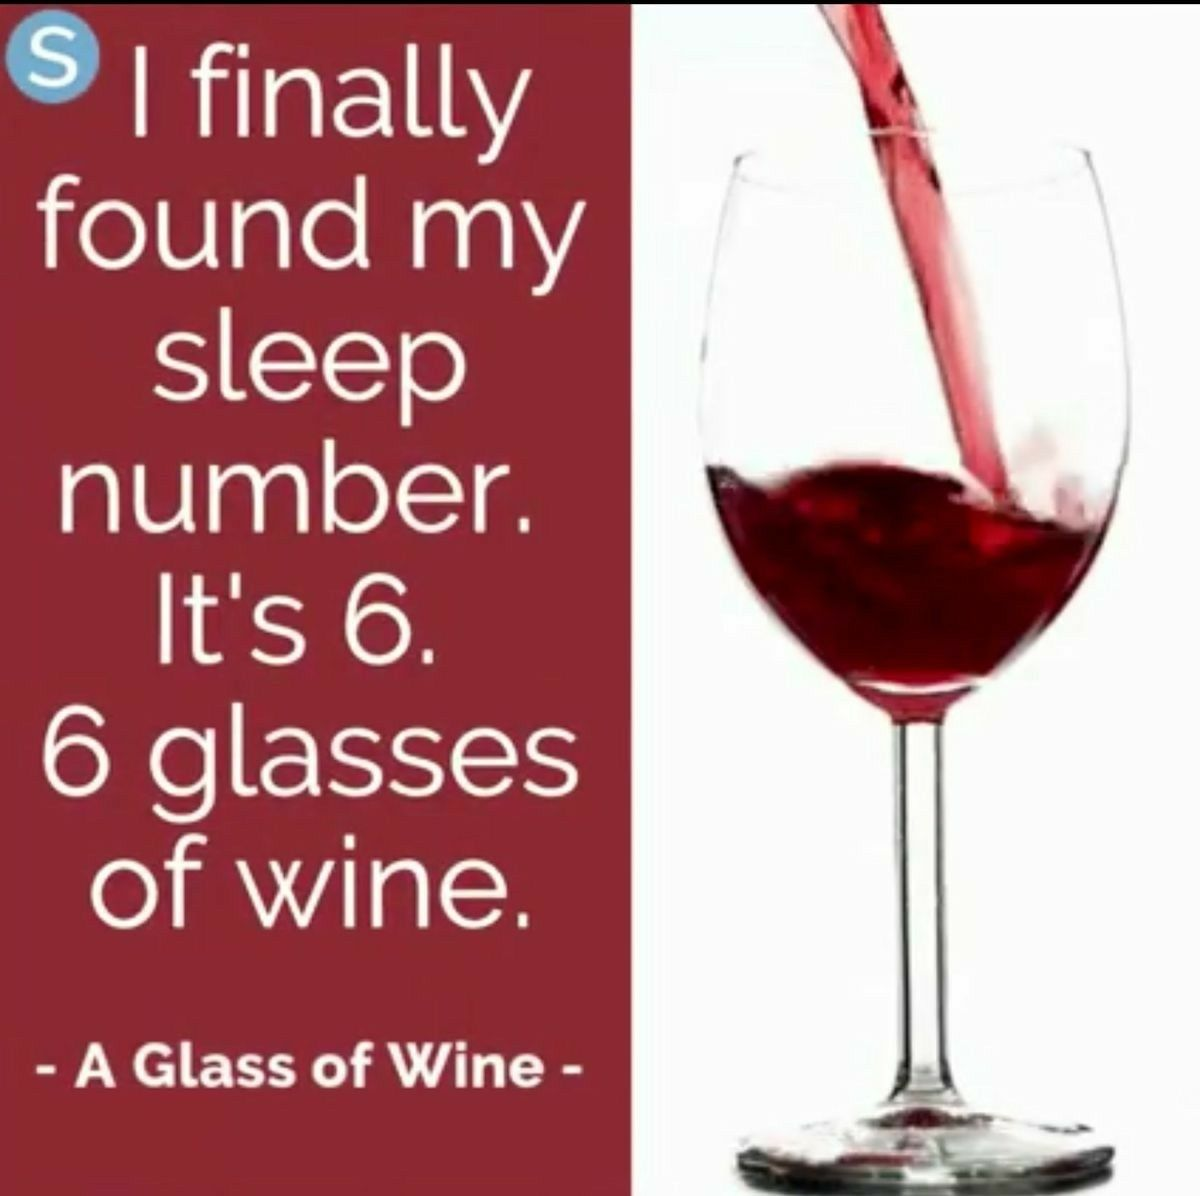 Wine Storage Temperature And Serving Suggestions Wine Jokes Wine Humor Wine Quotes